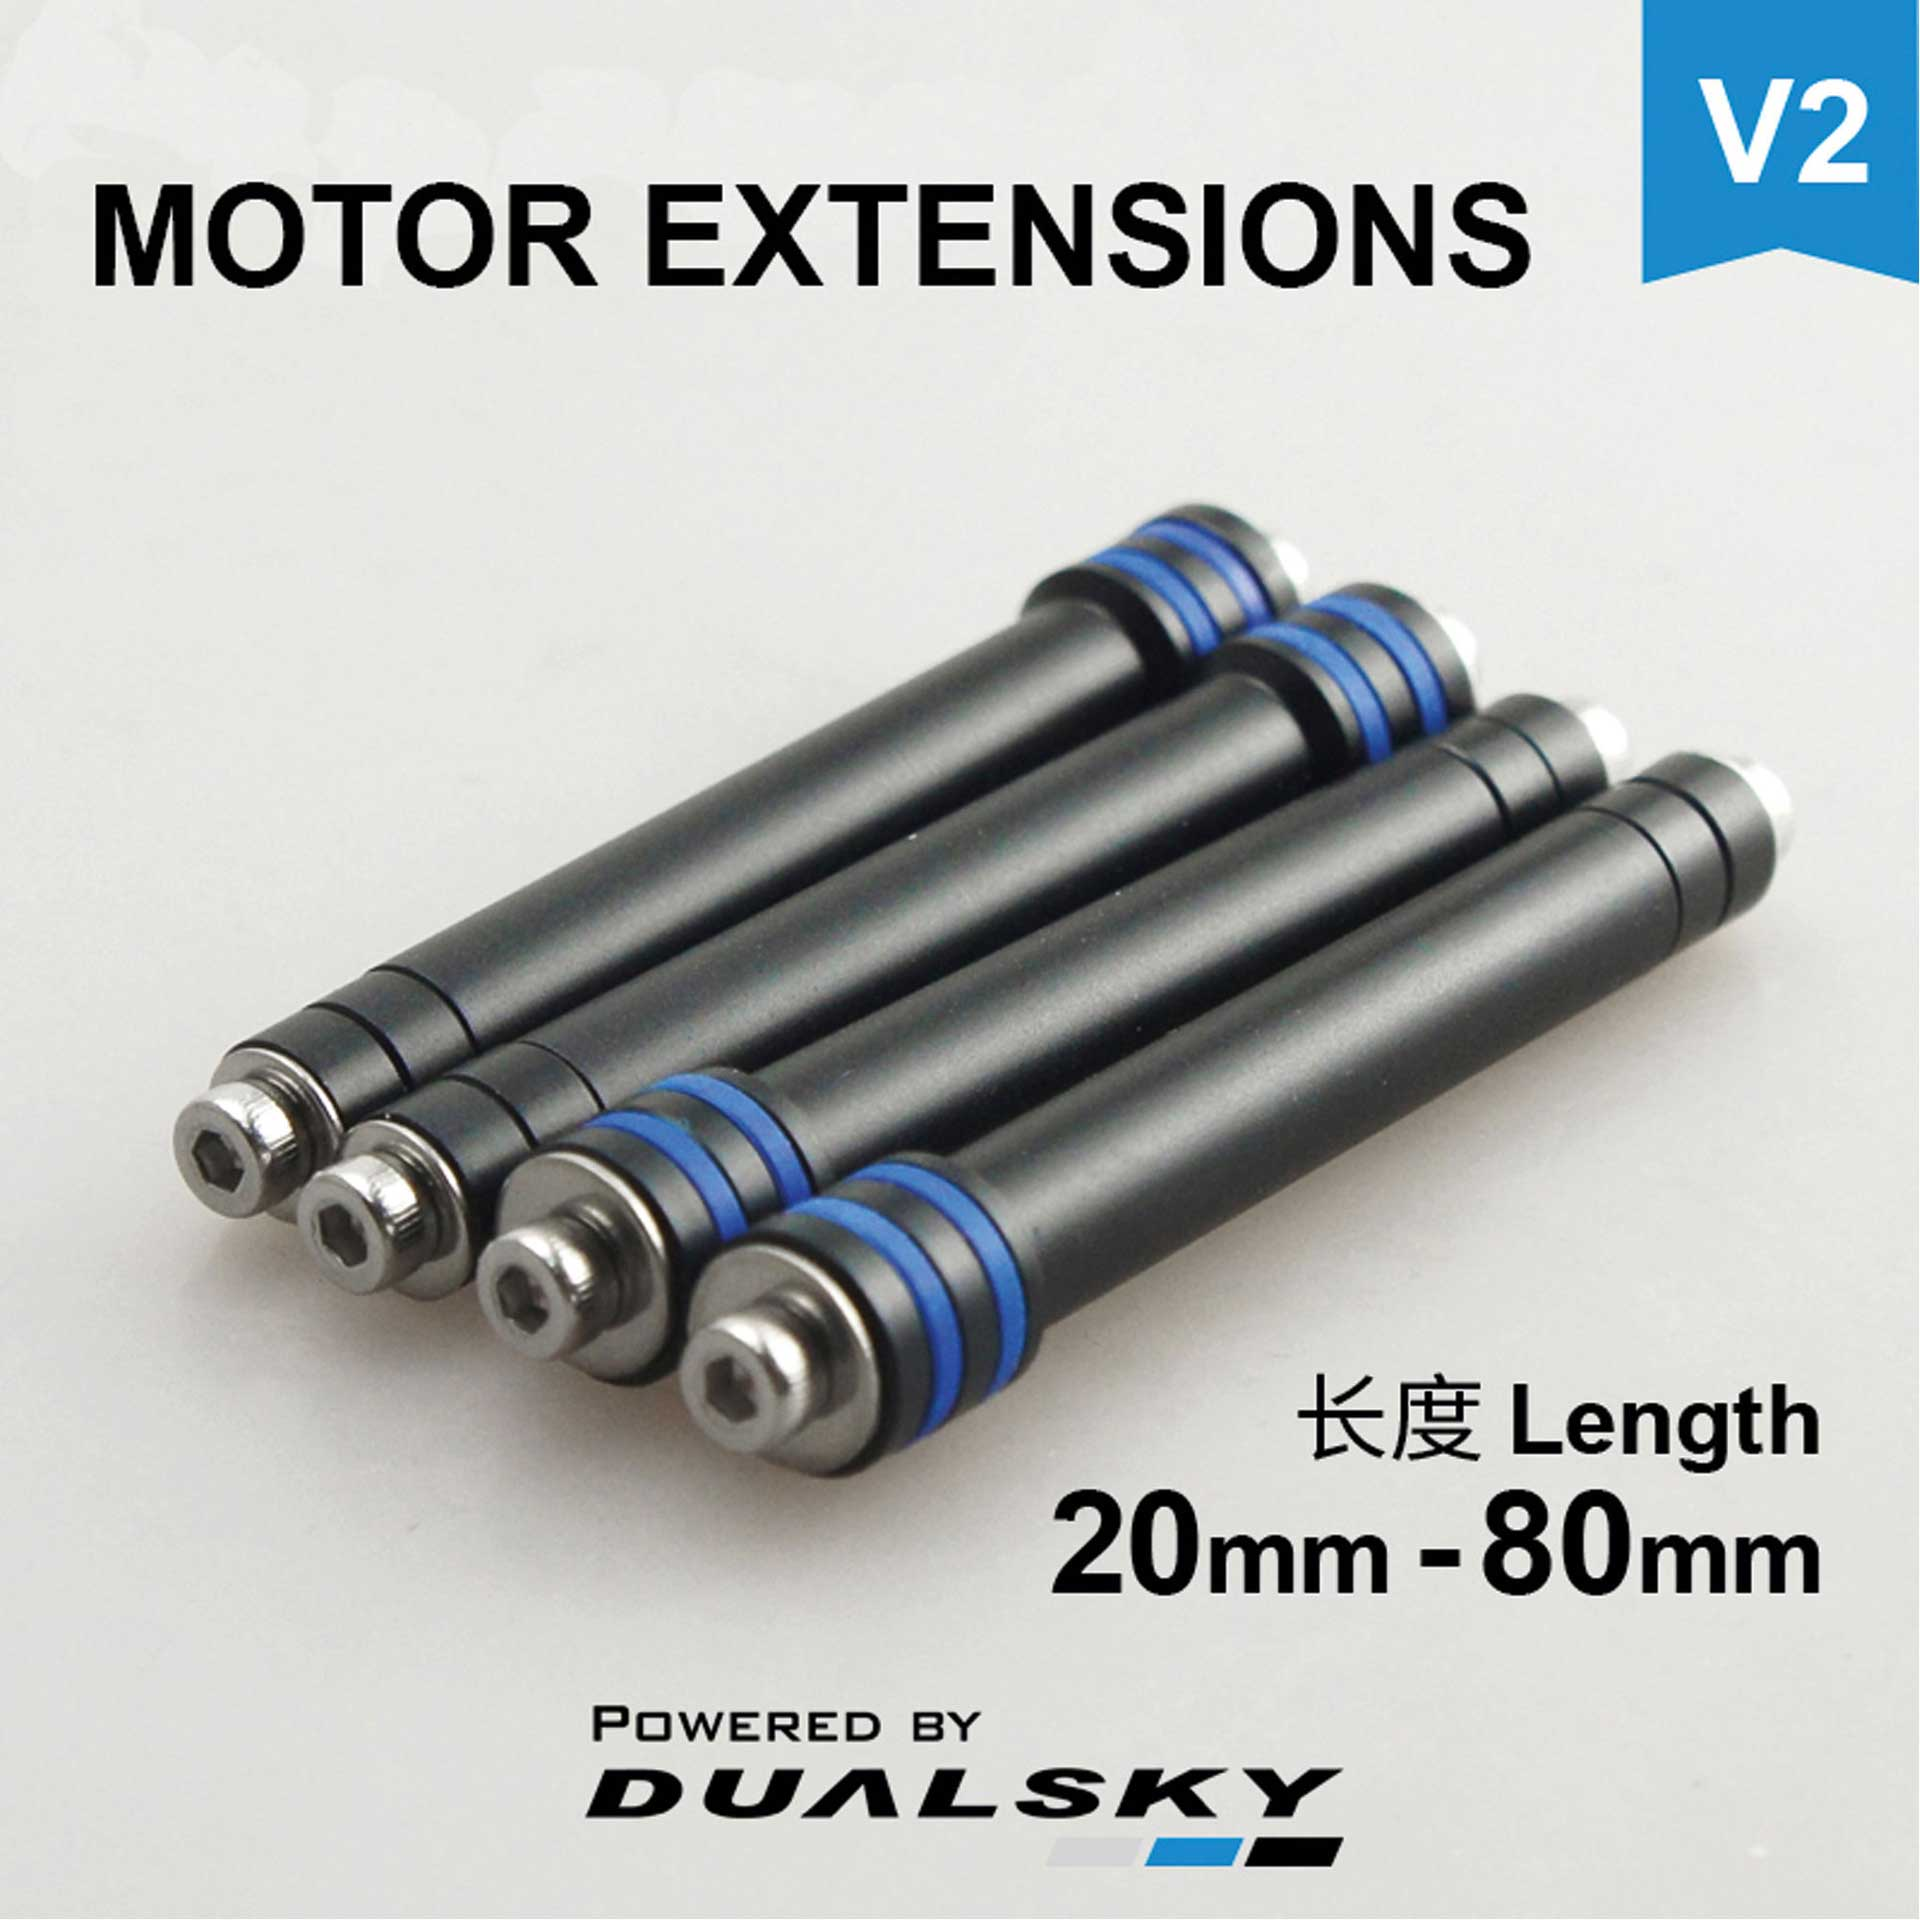 DUALSKY MOTOR EXTENSIONS V7 ME4-40 LENGTH 20 TO 40MM ADJUSTABLE WITH SCREWS stand off